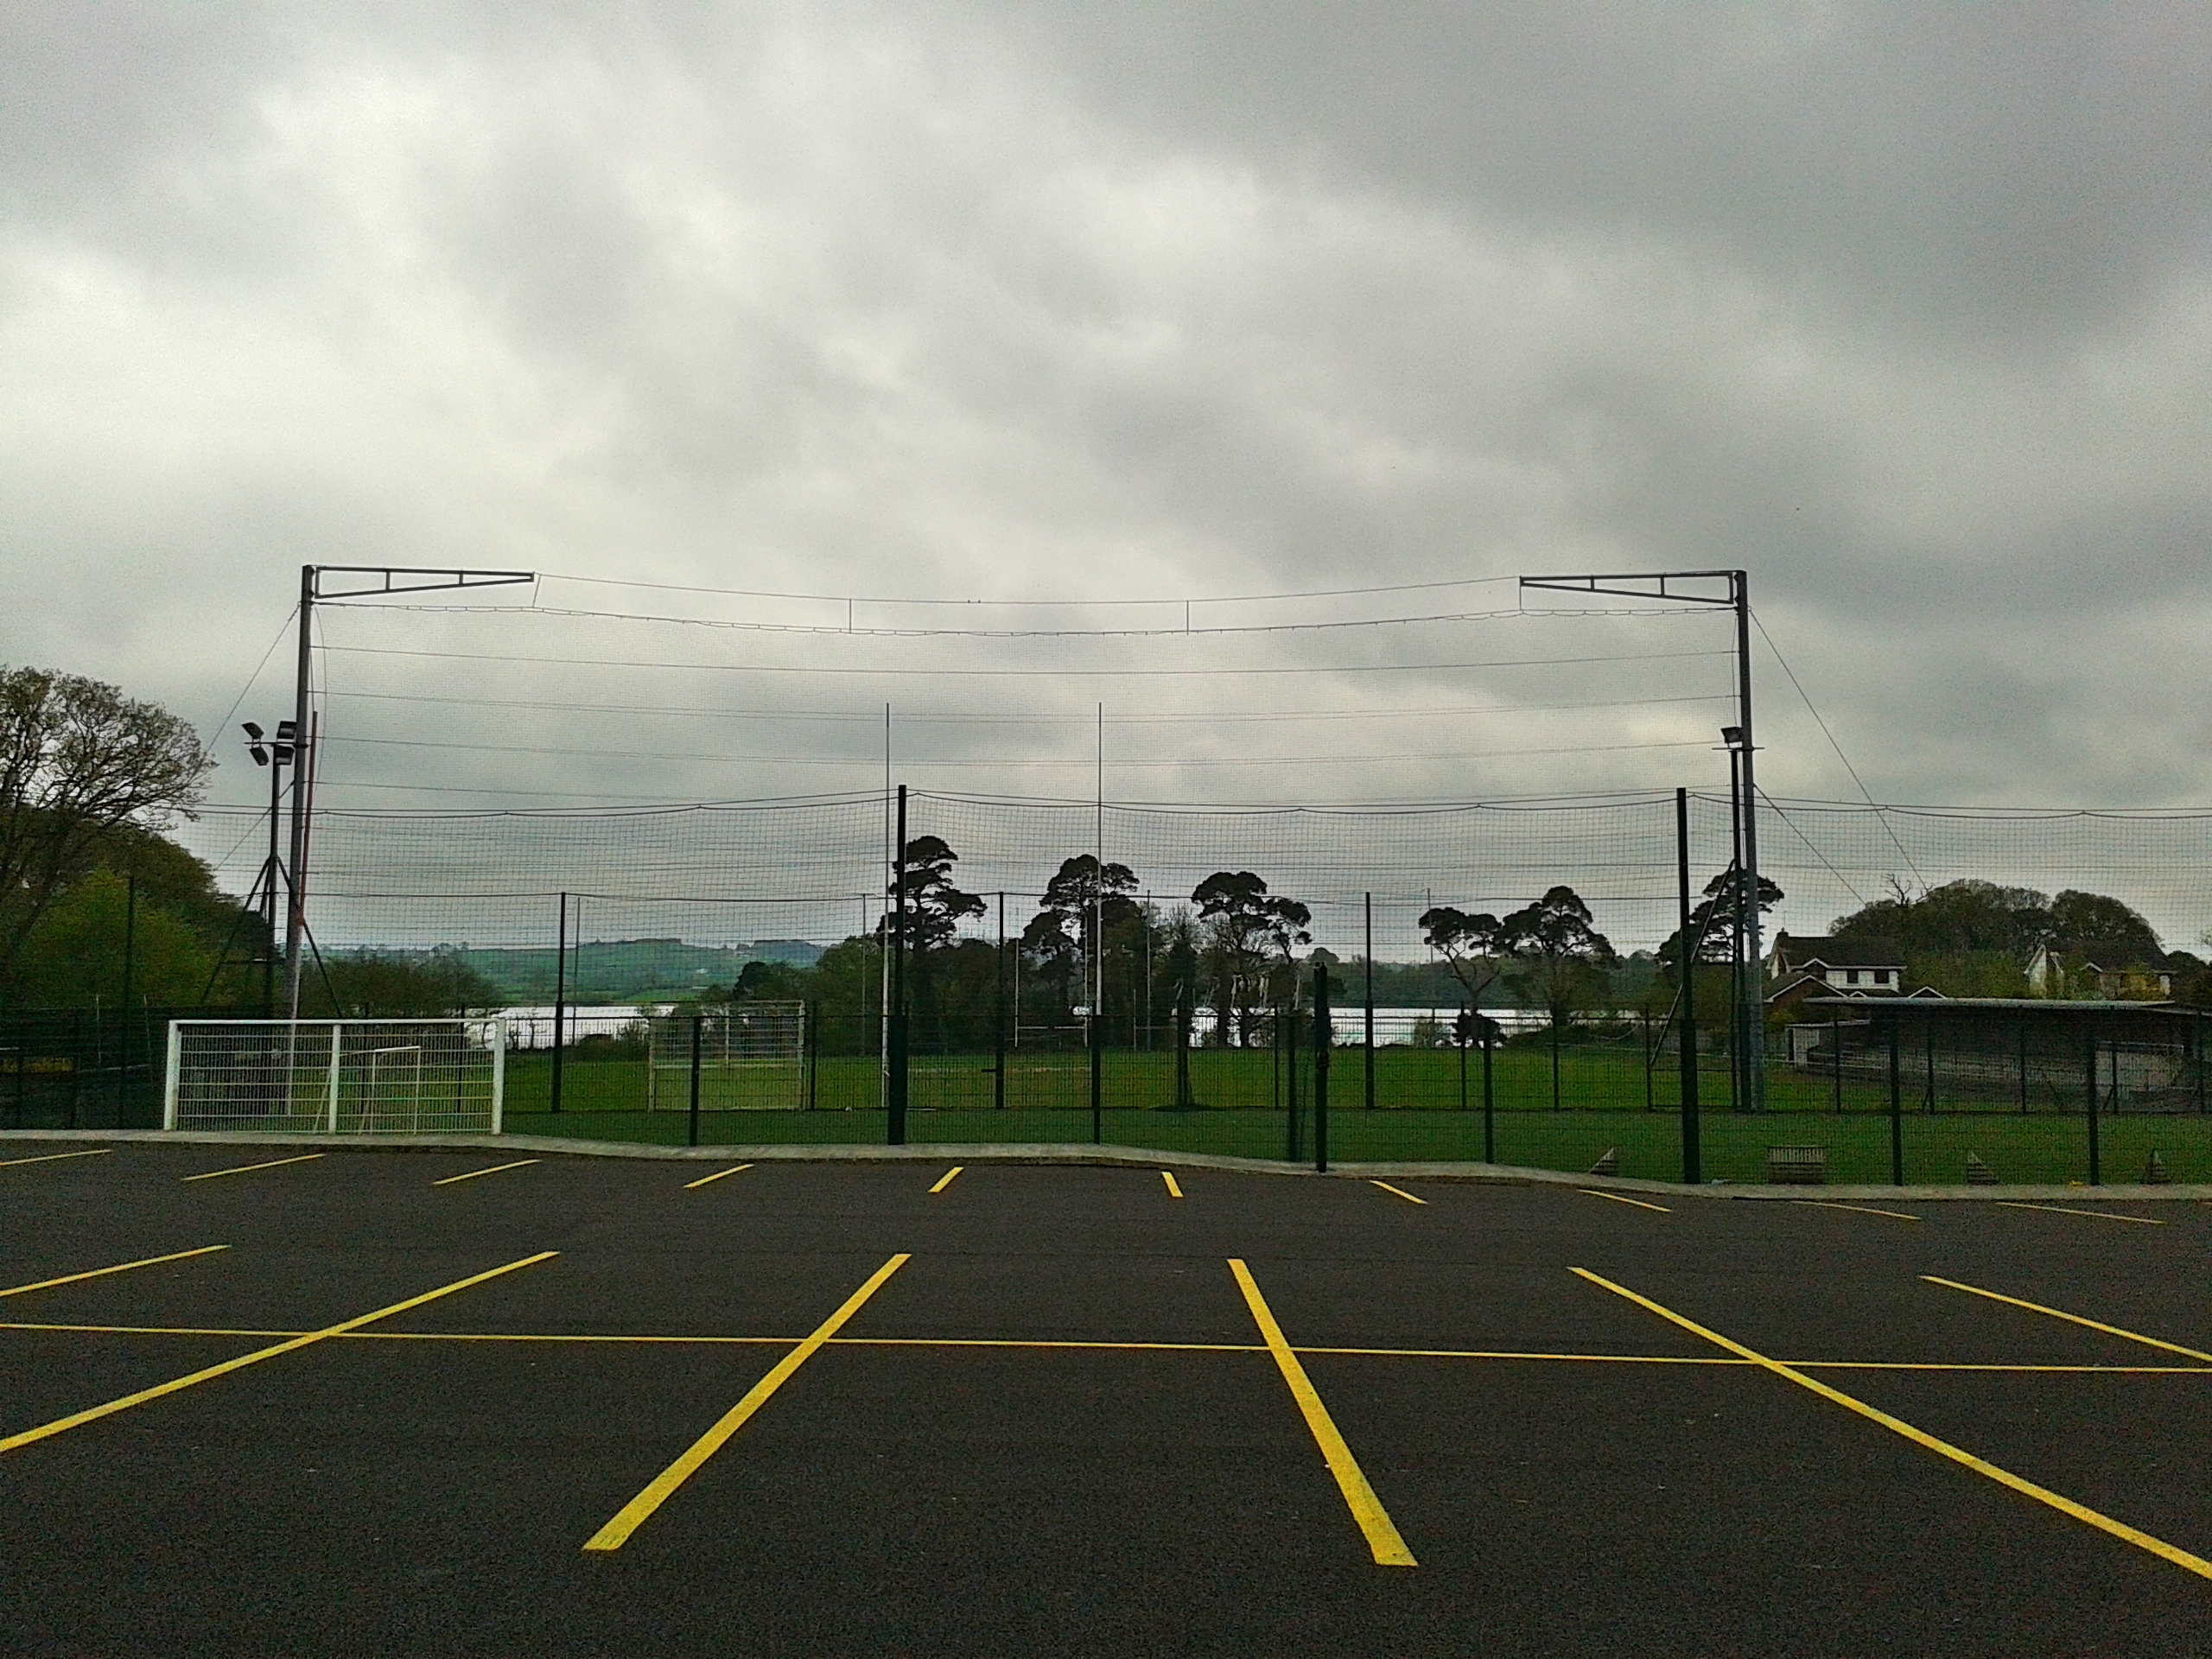 Car Park & Astro Pitch